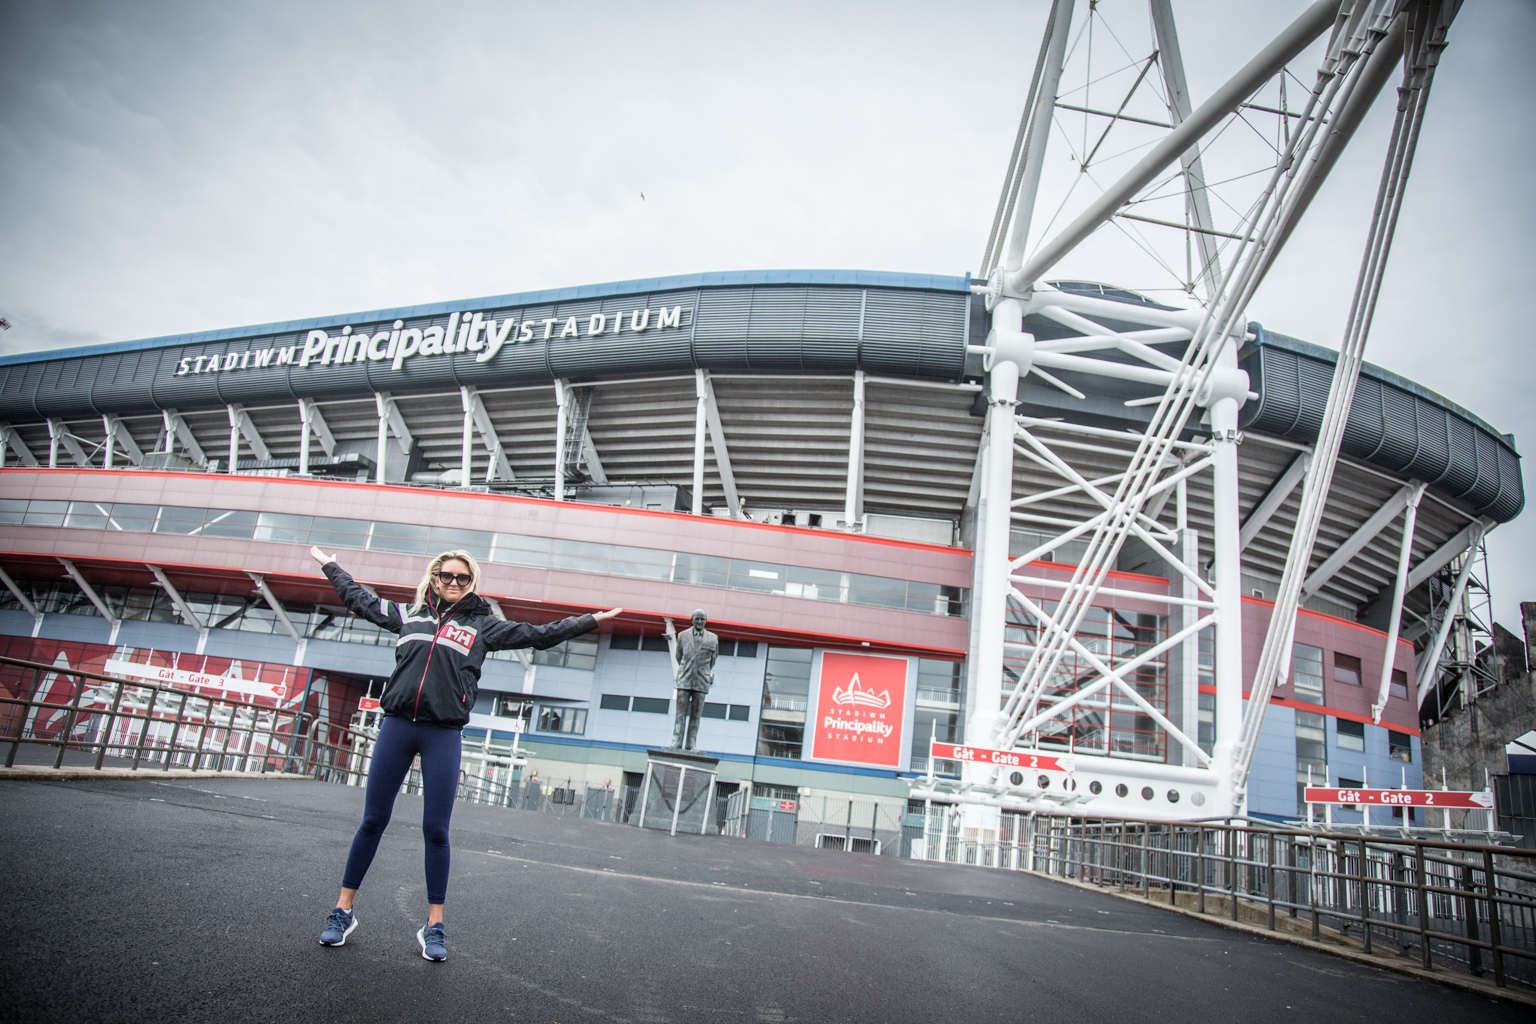 Fitness On Toast Faya Blog Health Training Workout Active Travel Escape City Break Wales Cardiff Millennium Principality Stadium Football UEFA Final June Rugby-14